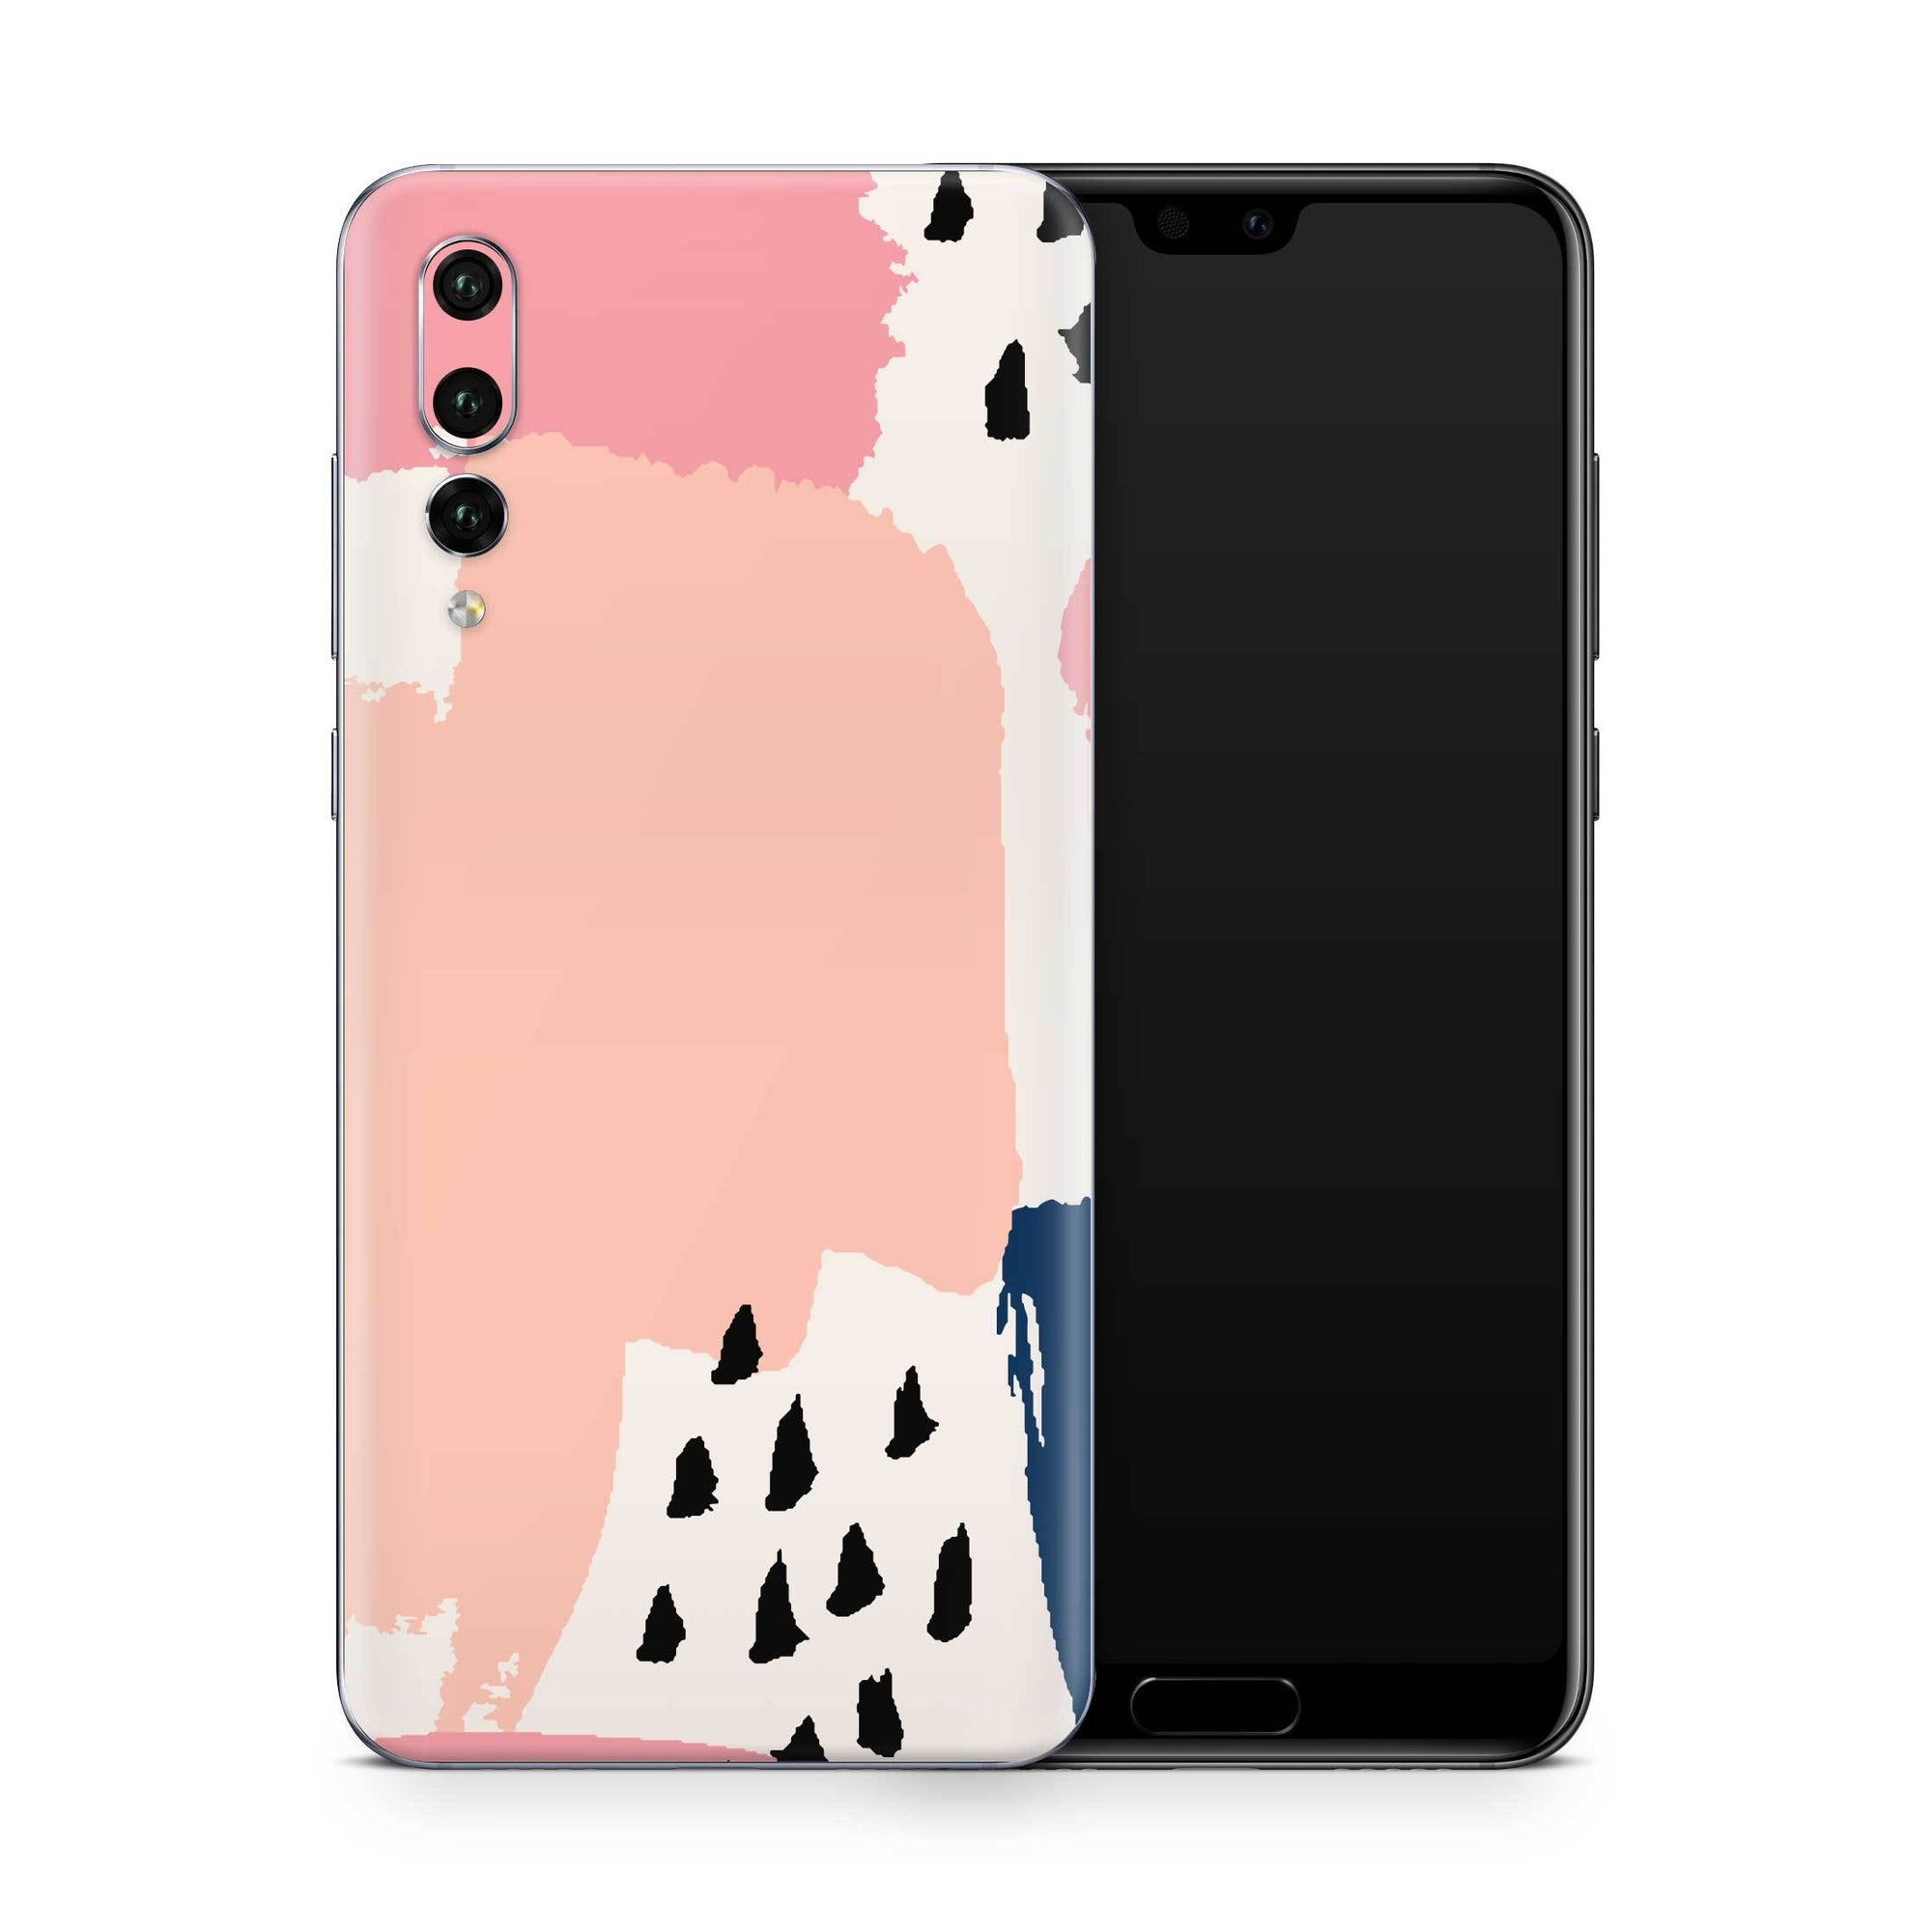 Miami Vice Skin Huawei P20 Pro and P30 Pro